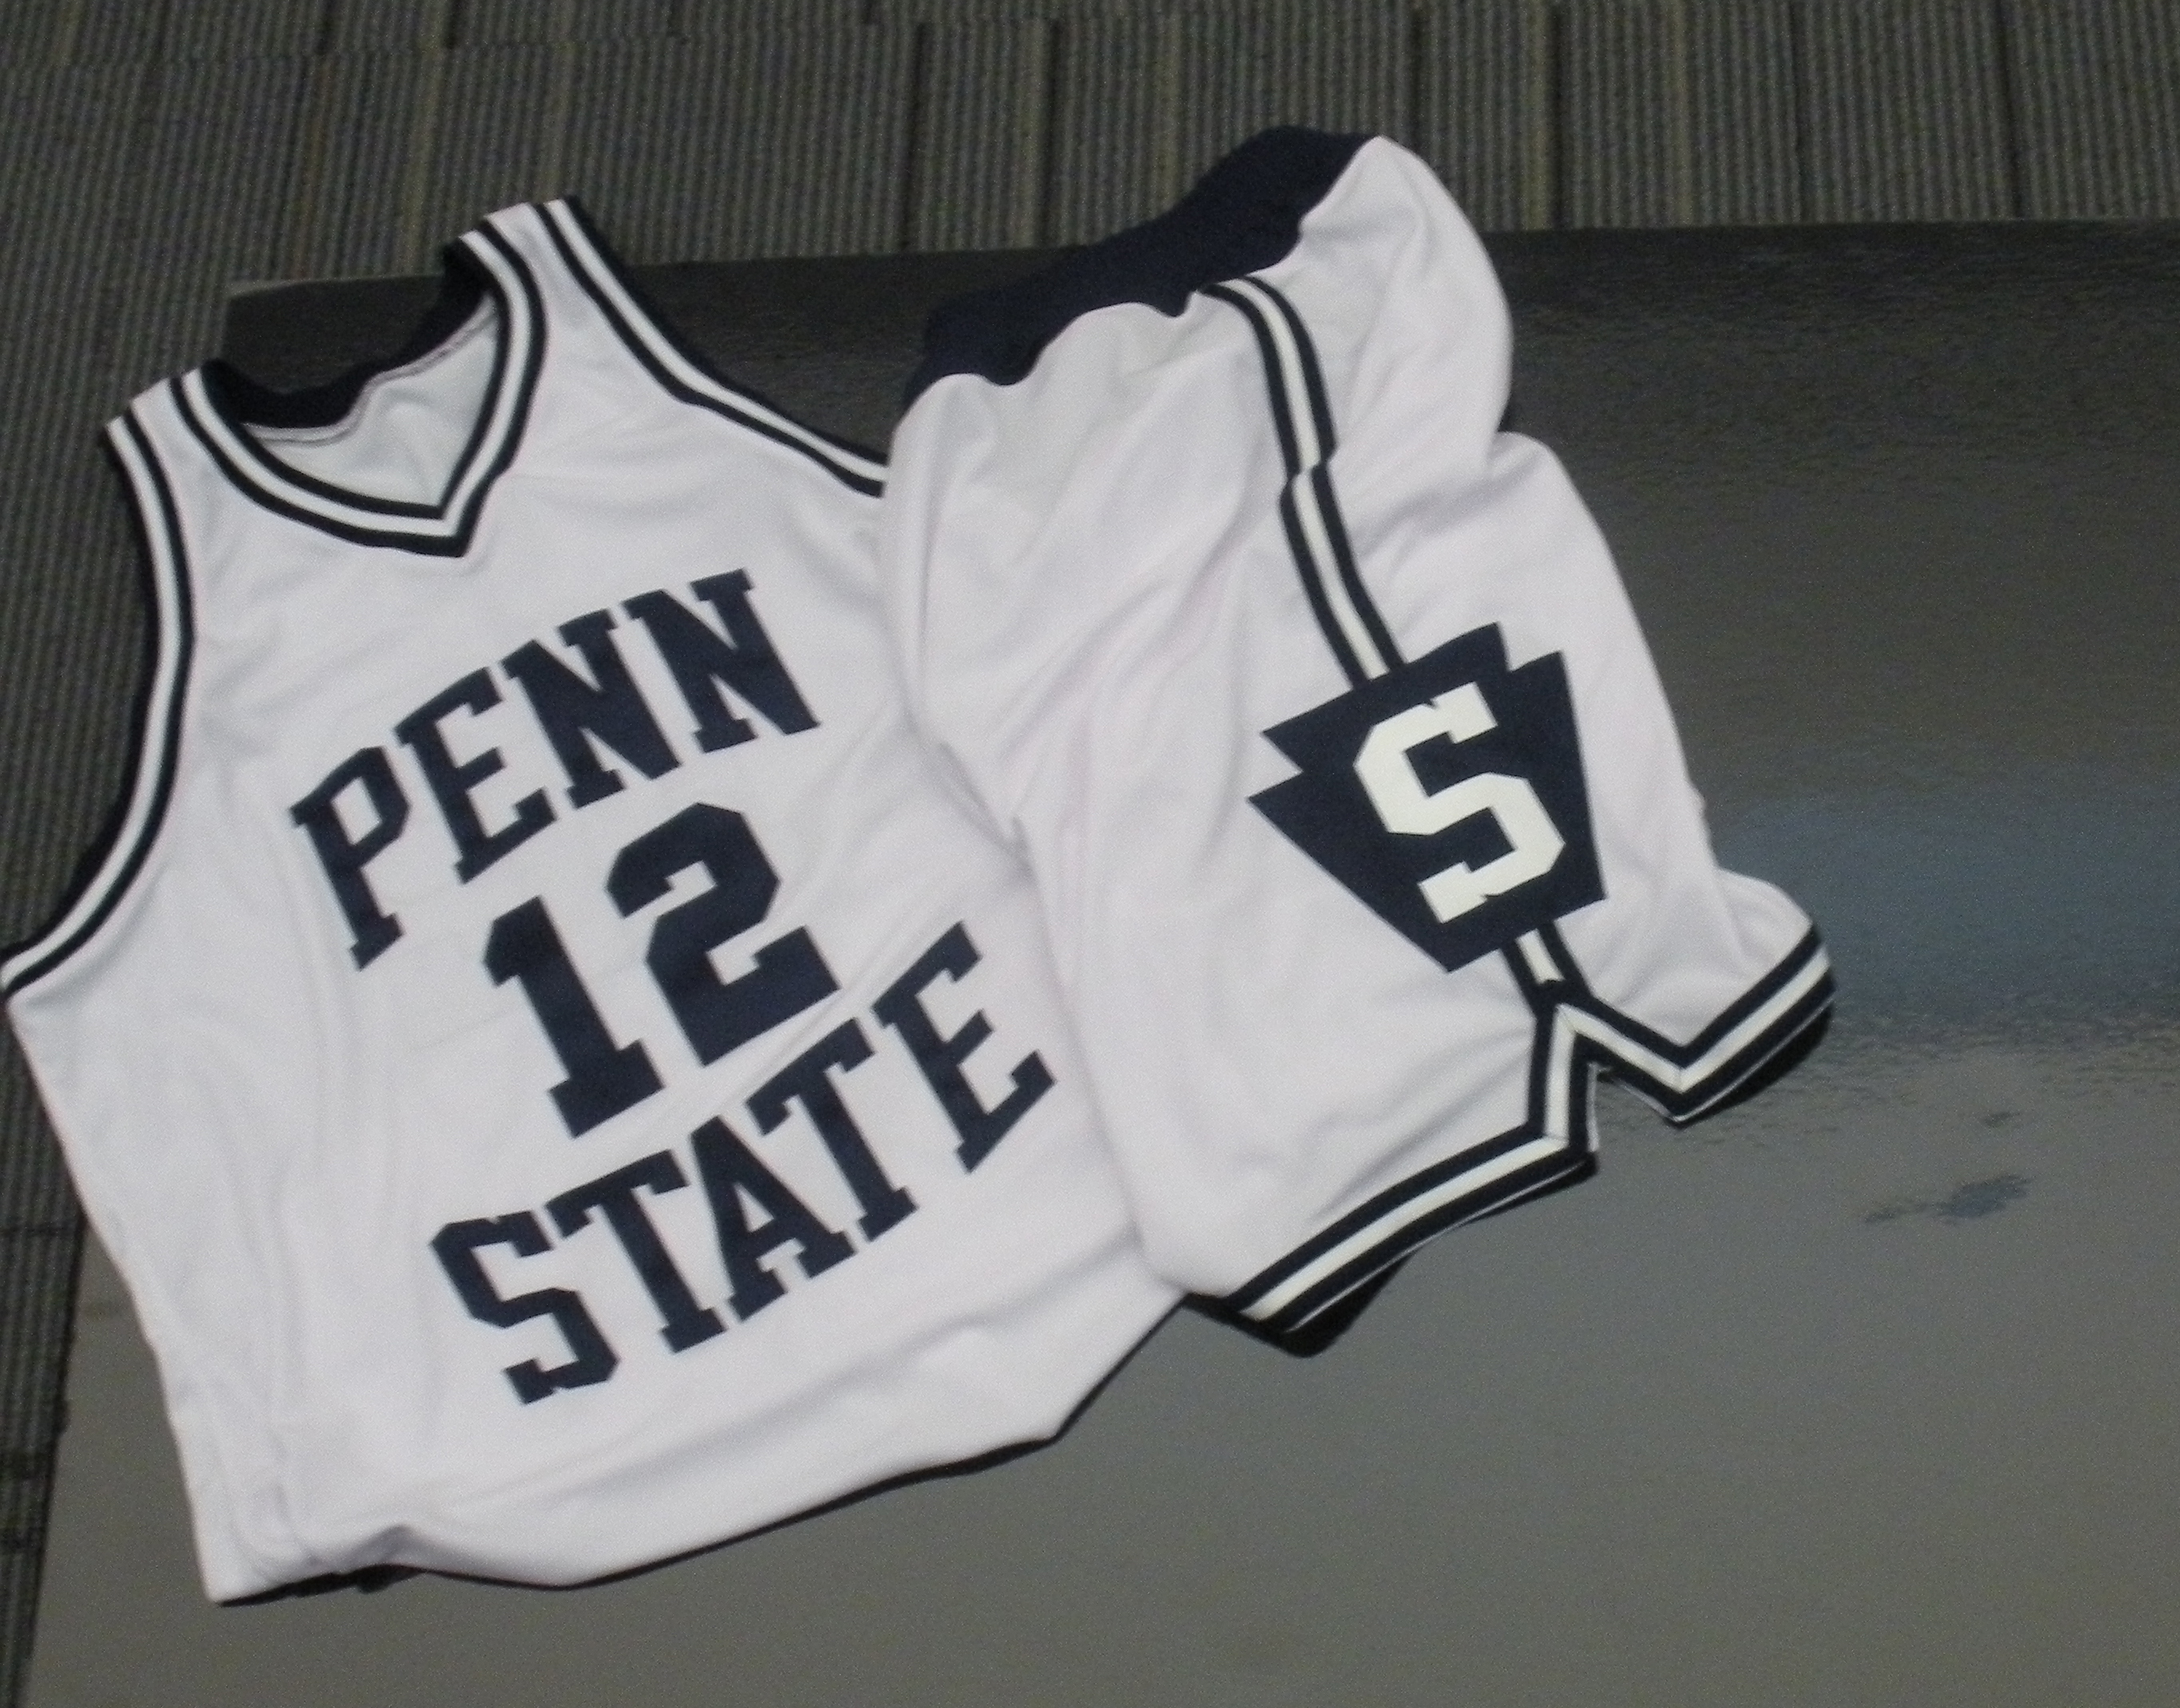 new arrivals 3b628 2881a Nittany Lions To Wear Throwback Uniforms To Benefit Coaches ...